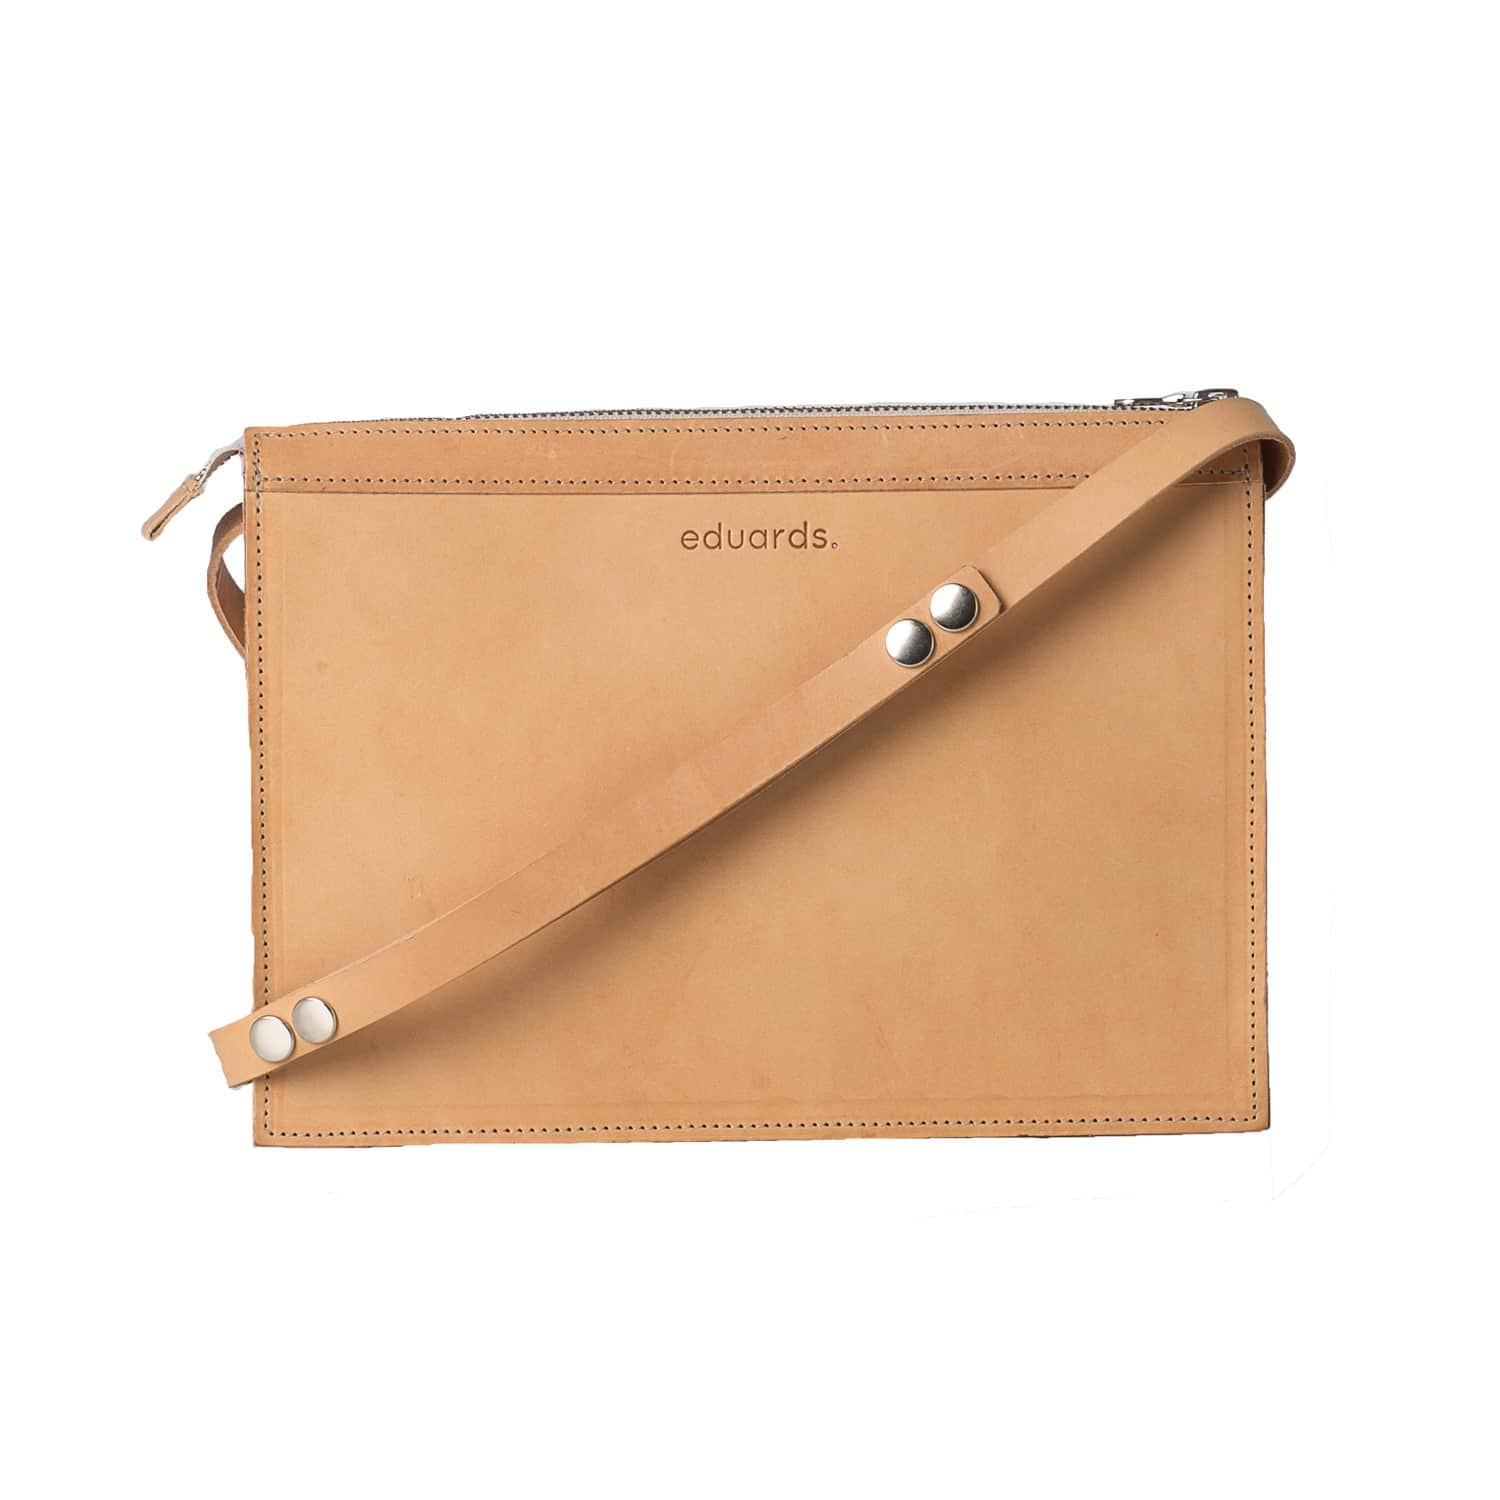 82698d2a3b84 Näver Small Shoulder Bag in Nature Leather image